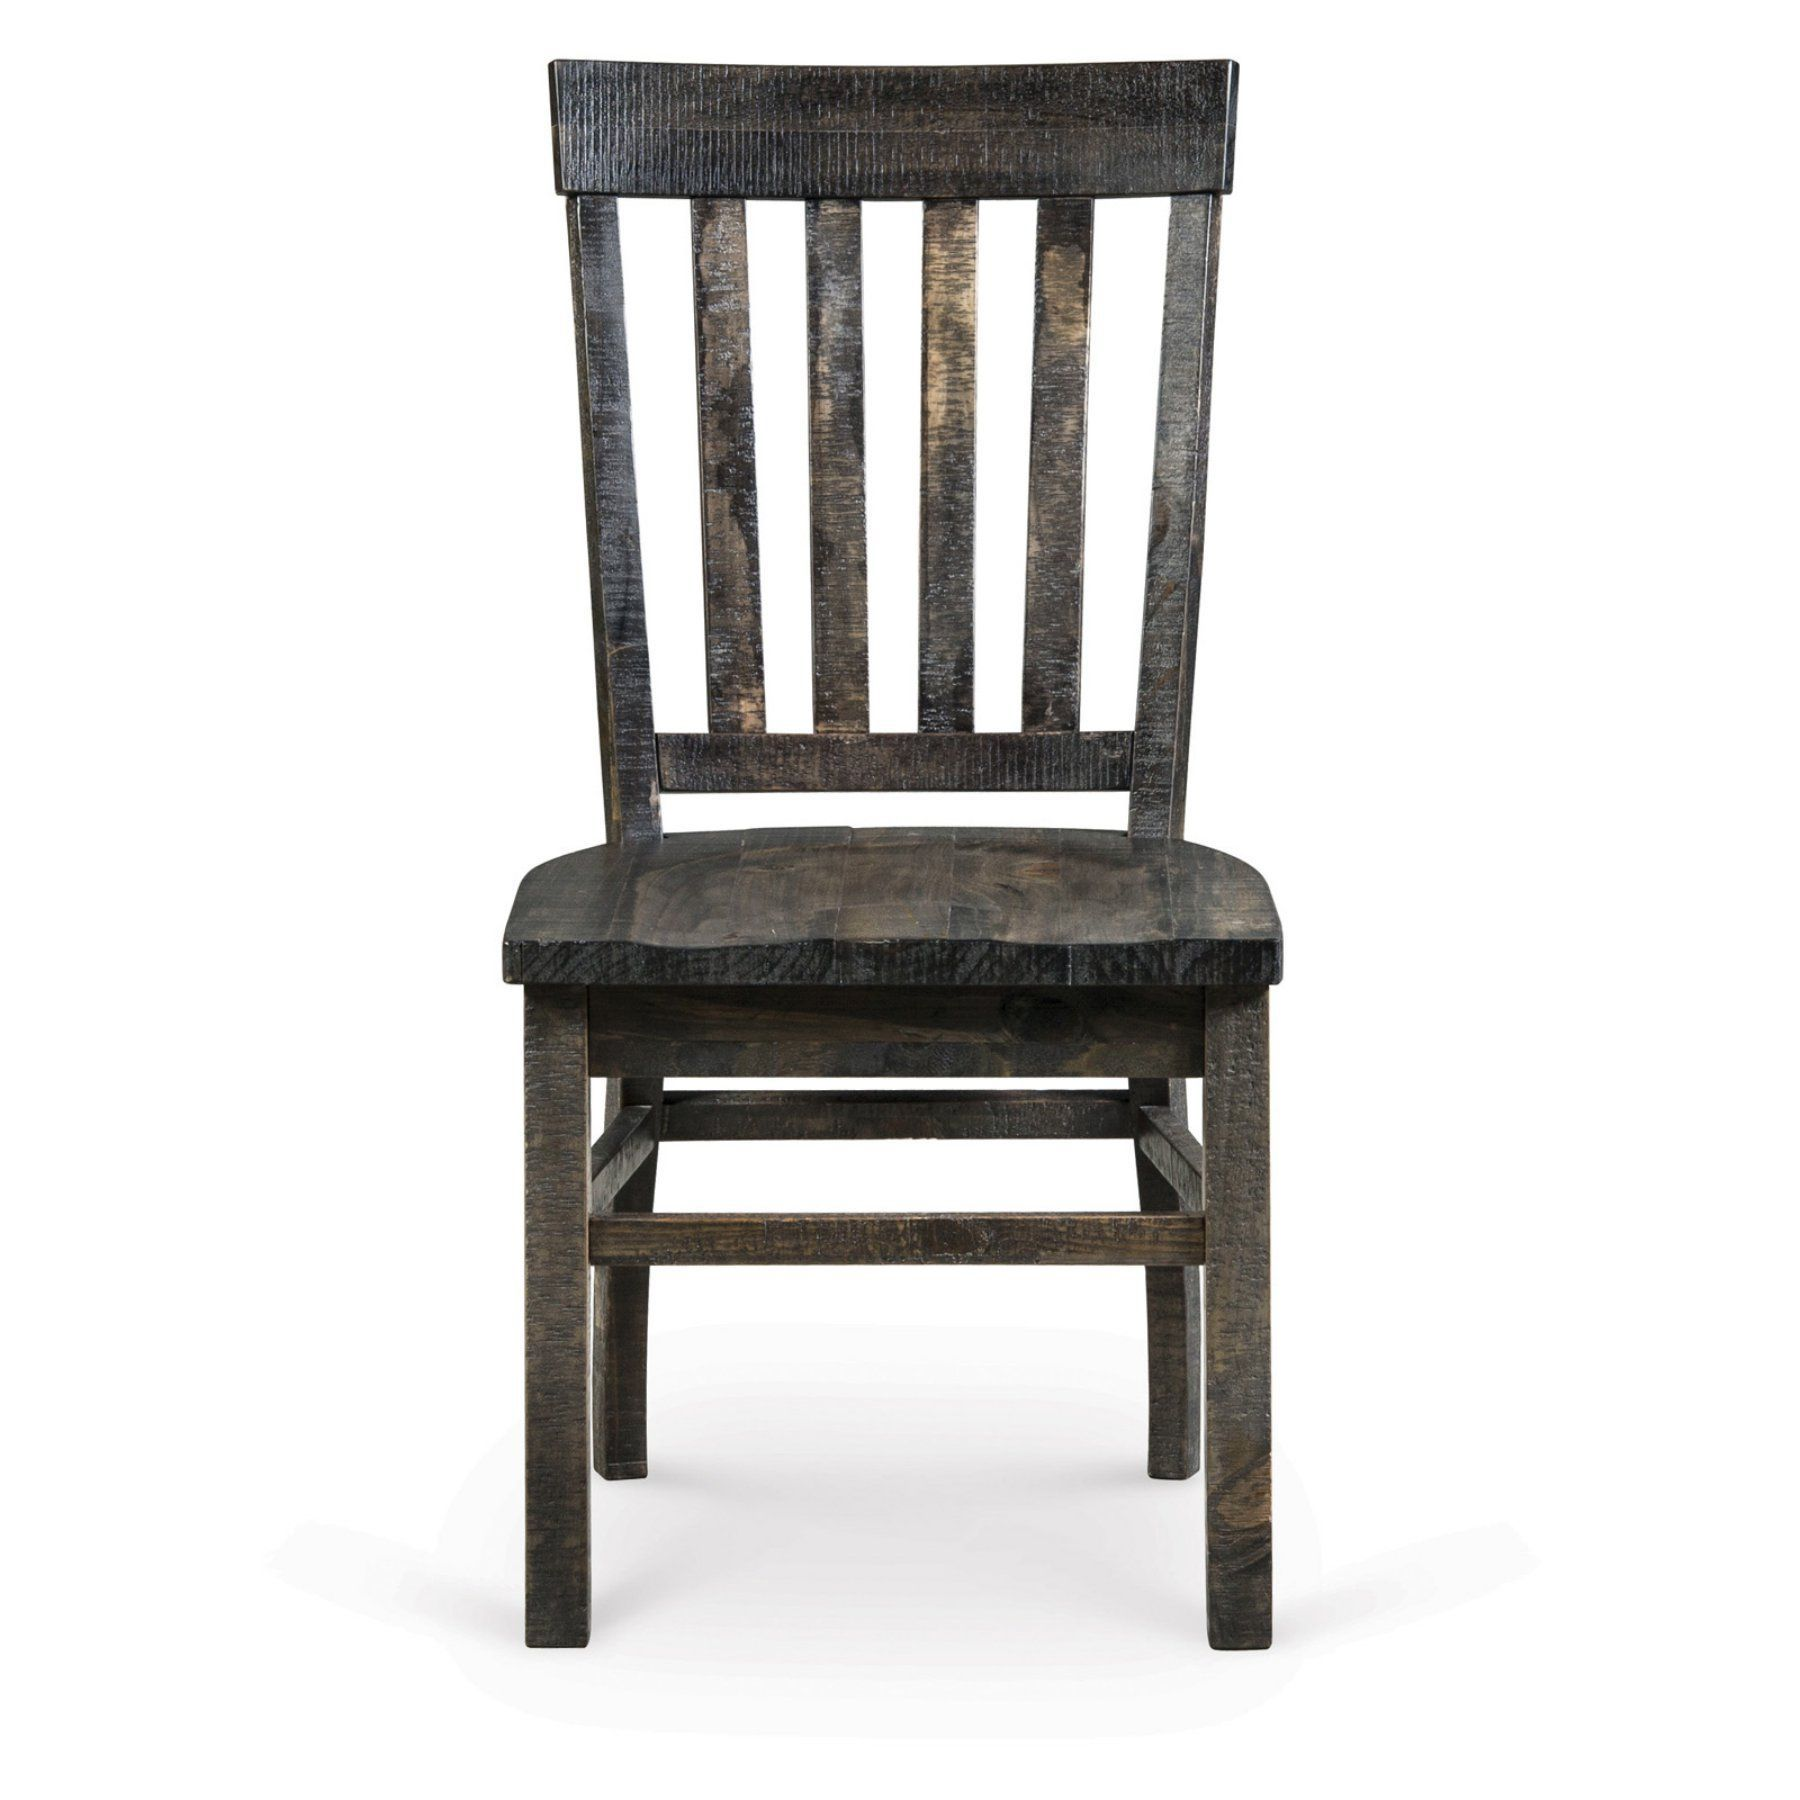 Magnussen Bellamy Wood Dining Chairs - Set of 2 - MHF2122